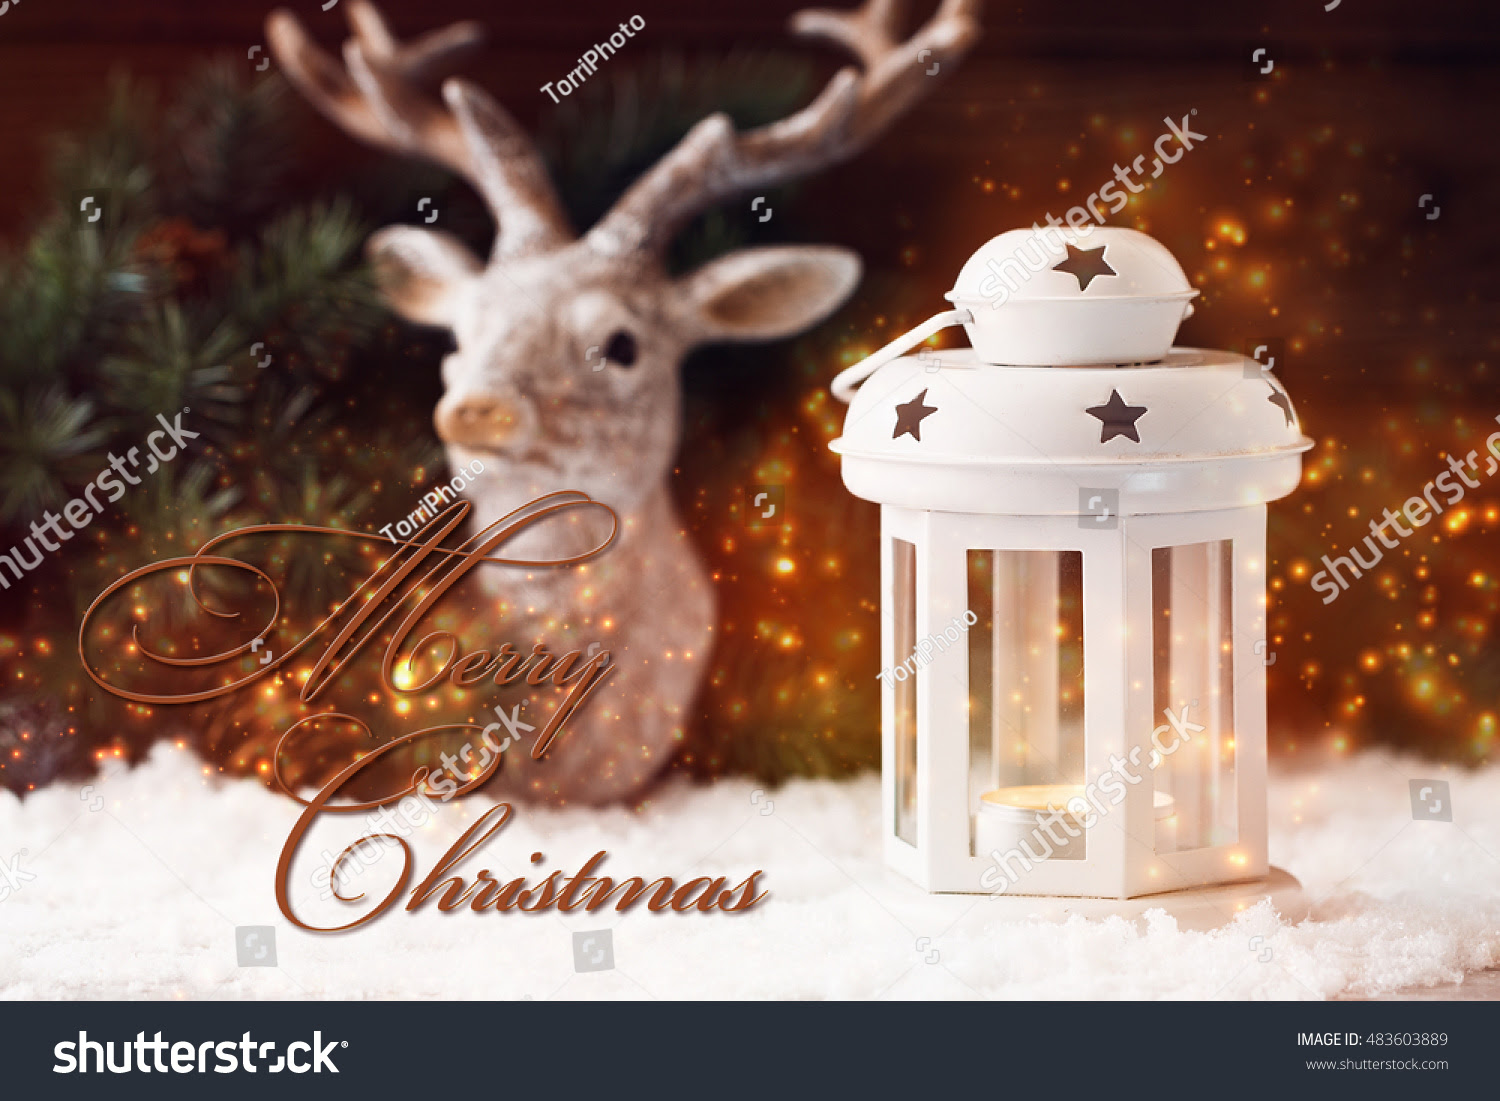 http://www.shutterstock.com/pic-483603889/stock-photo-merry-christmas-card-with-white-lantern-shine-lights-and-deer-decoration-on-background-shallow-focus.html